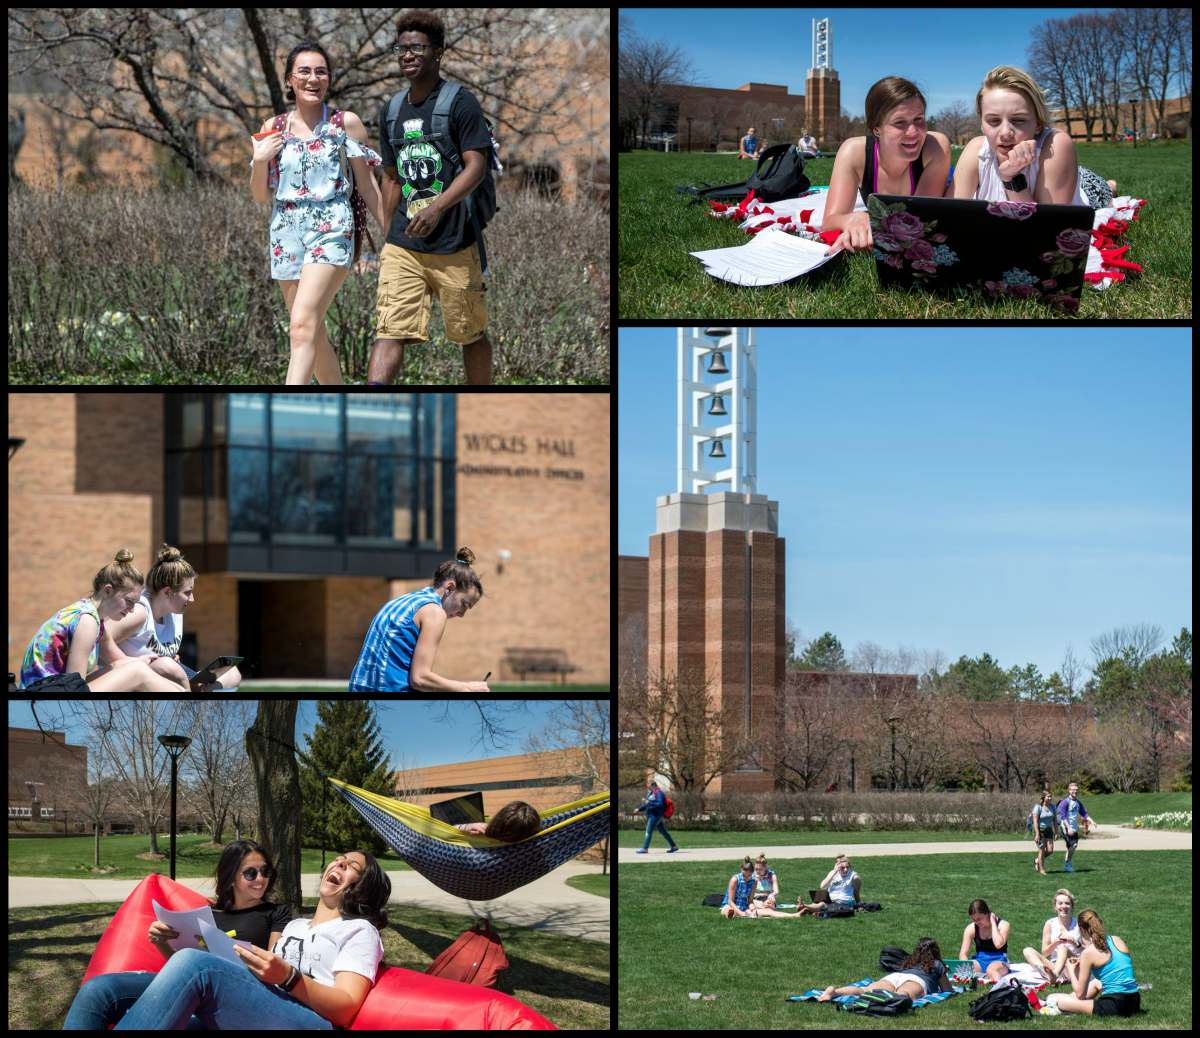 Collage of images of students enjoying the spring temperatures during exam week of winter semester.